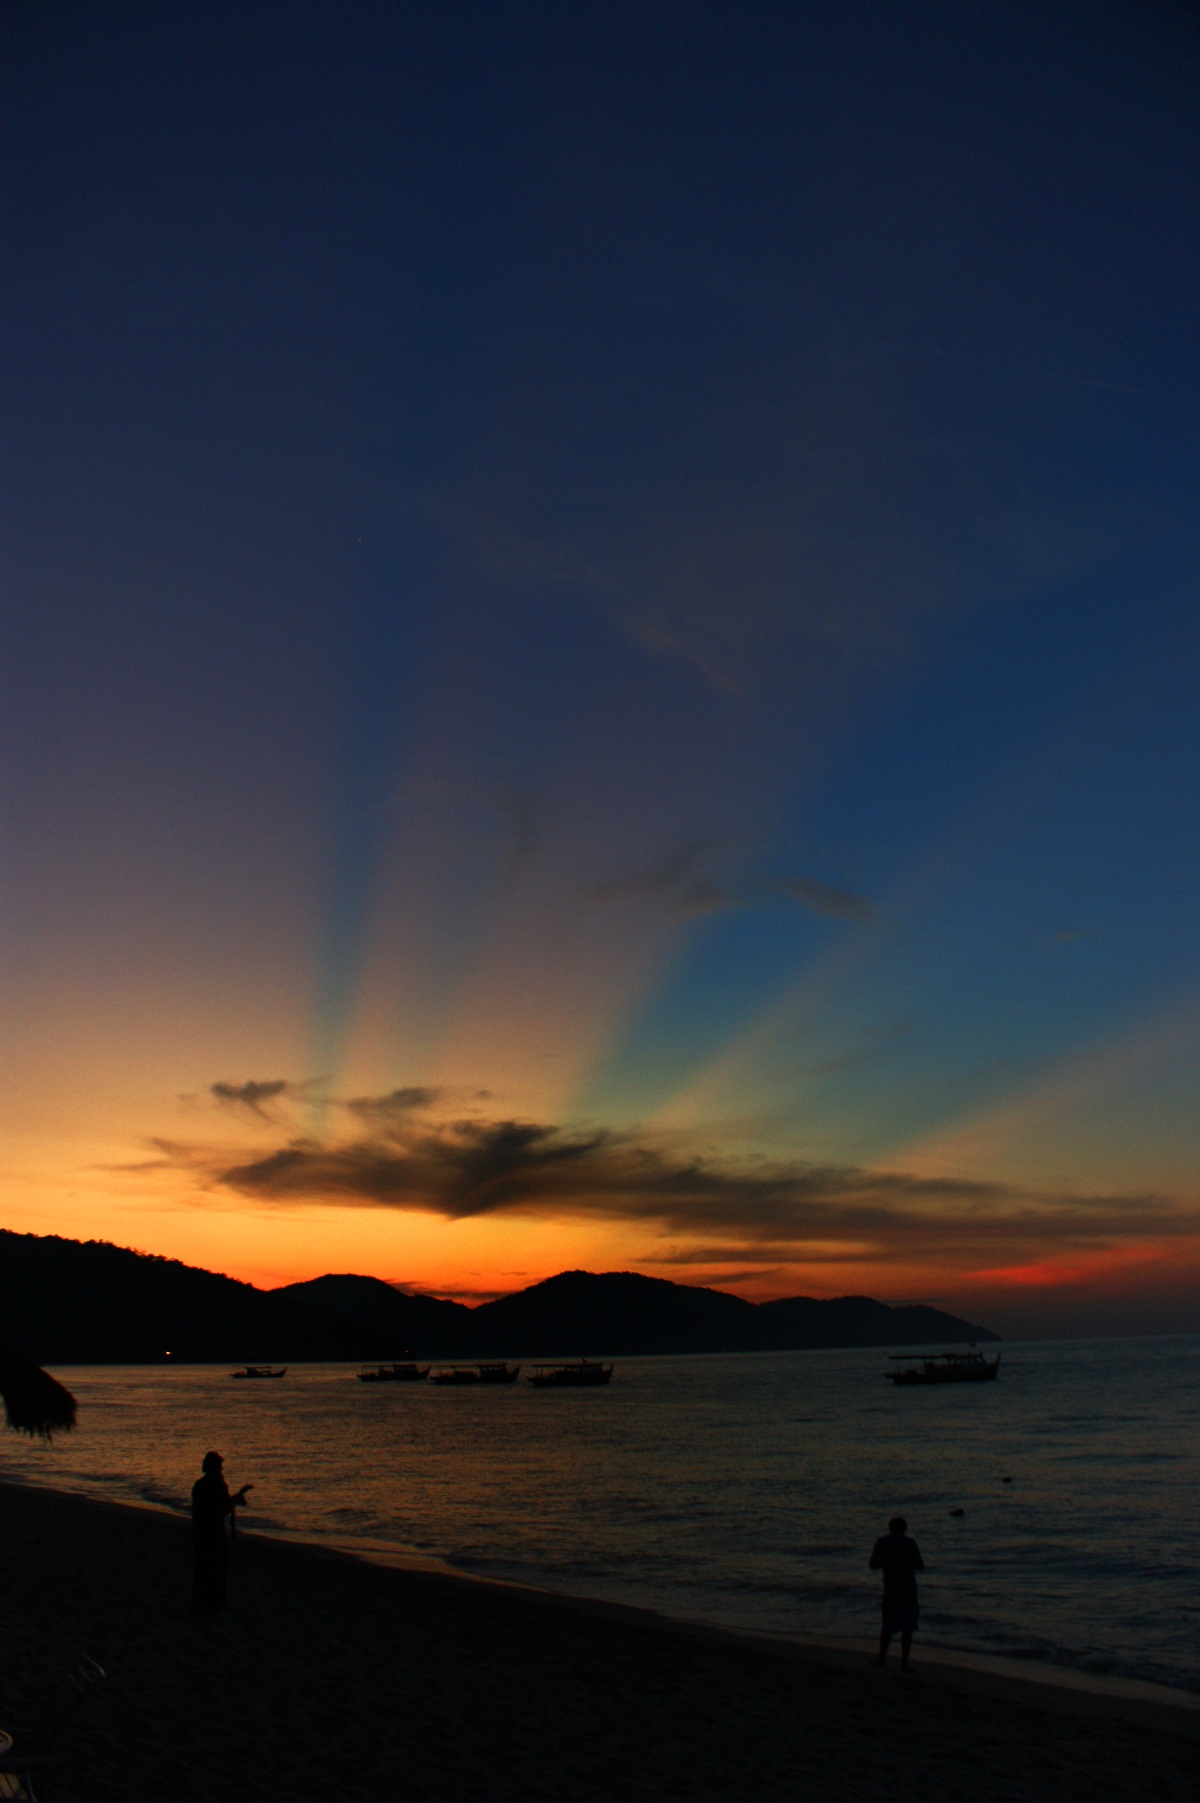 https://www.images.scottphotographics.com/shot-of-the-day/%236/penang-malaysia-beach-sunset-02.jpg